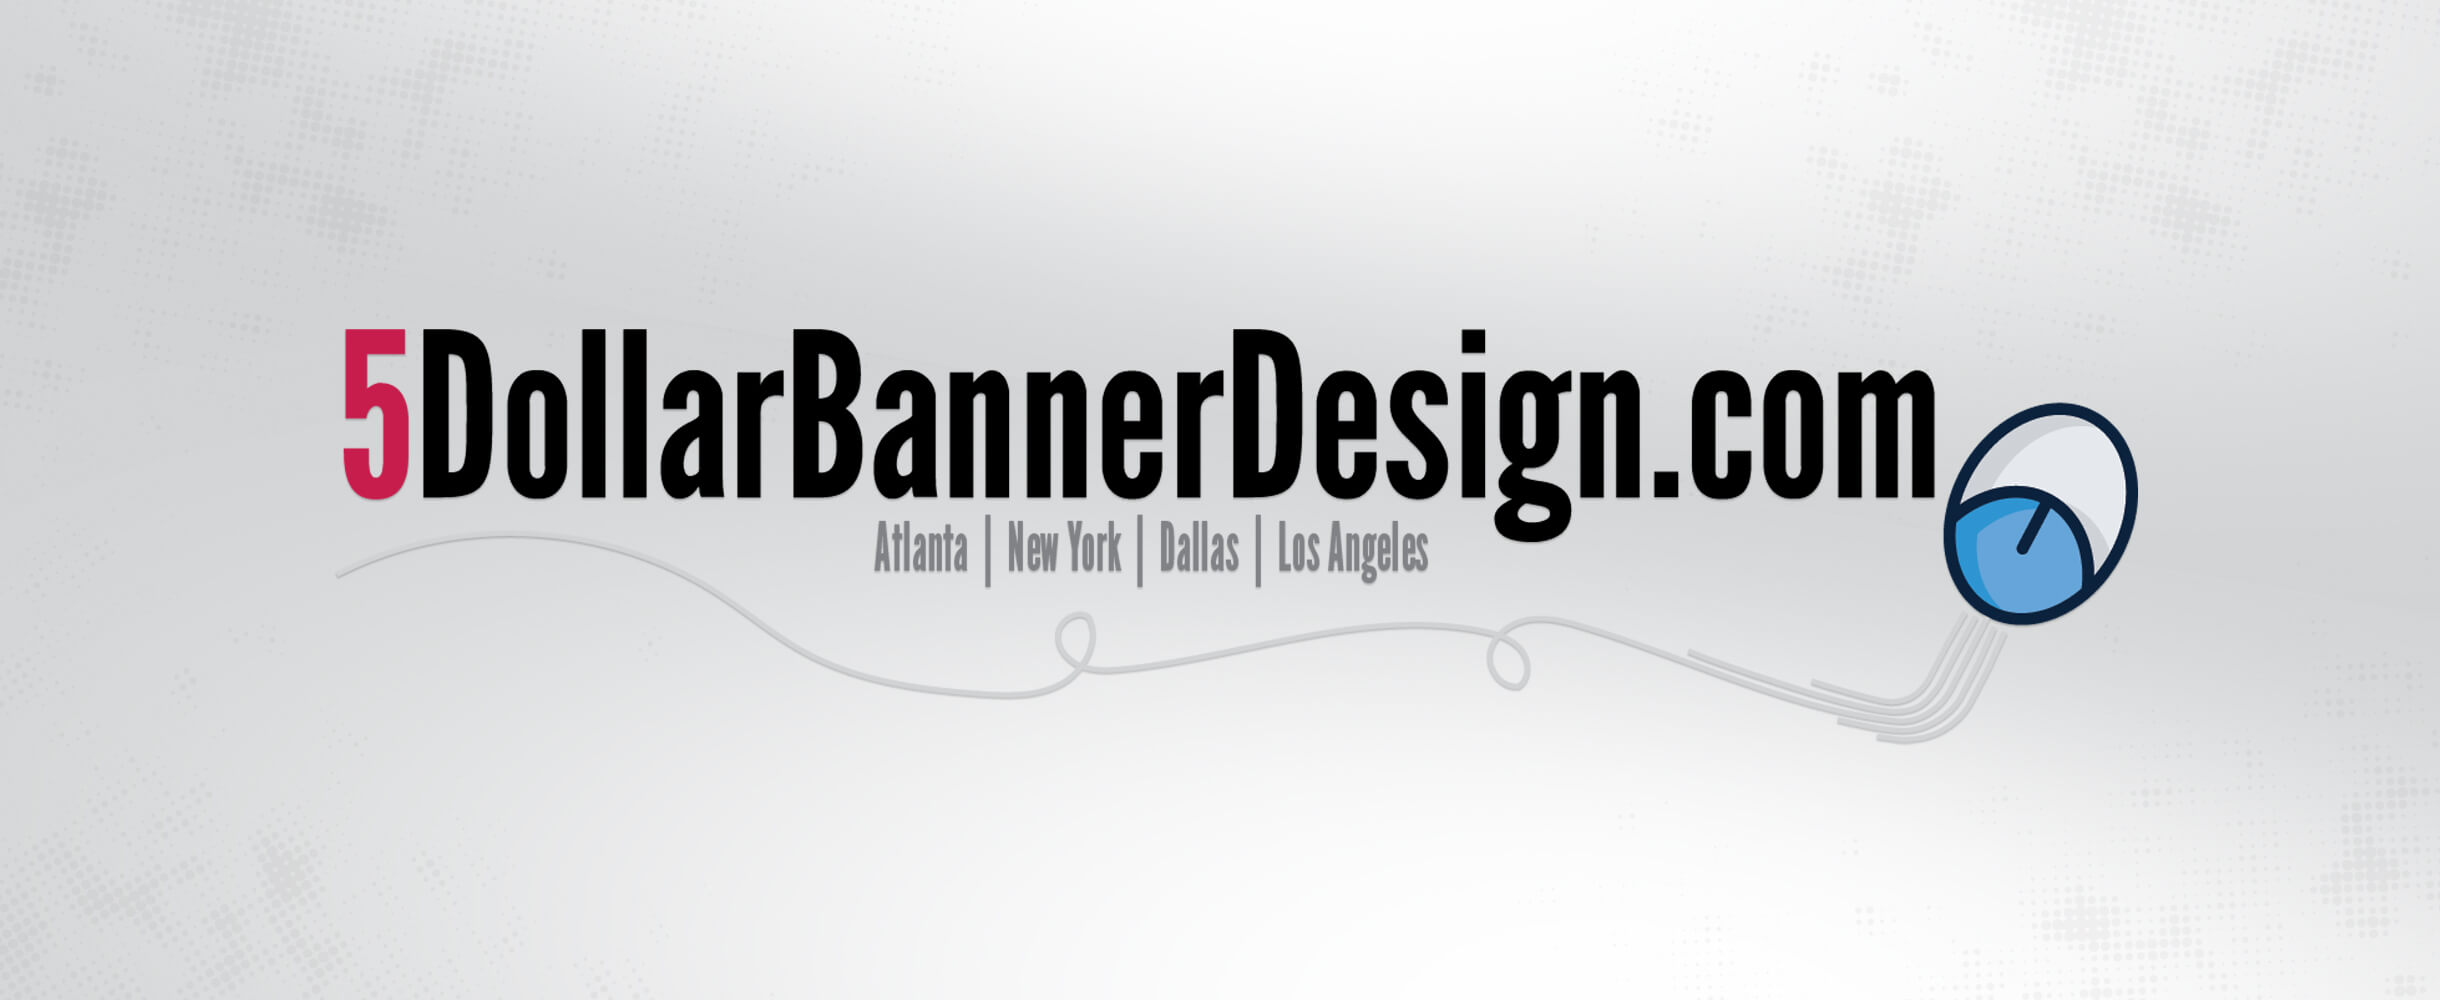 5 dollar banner design logo